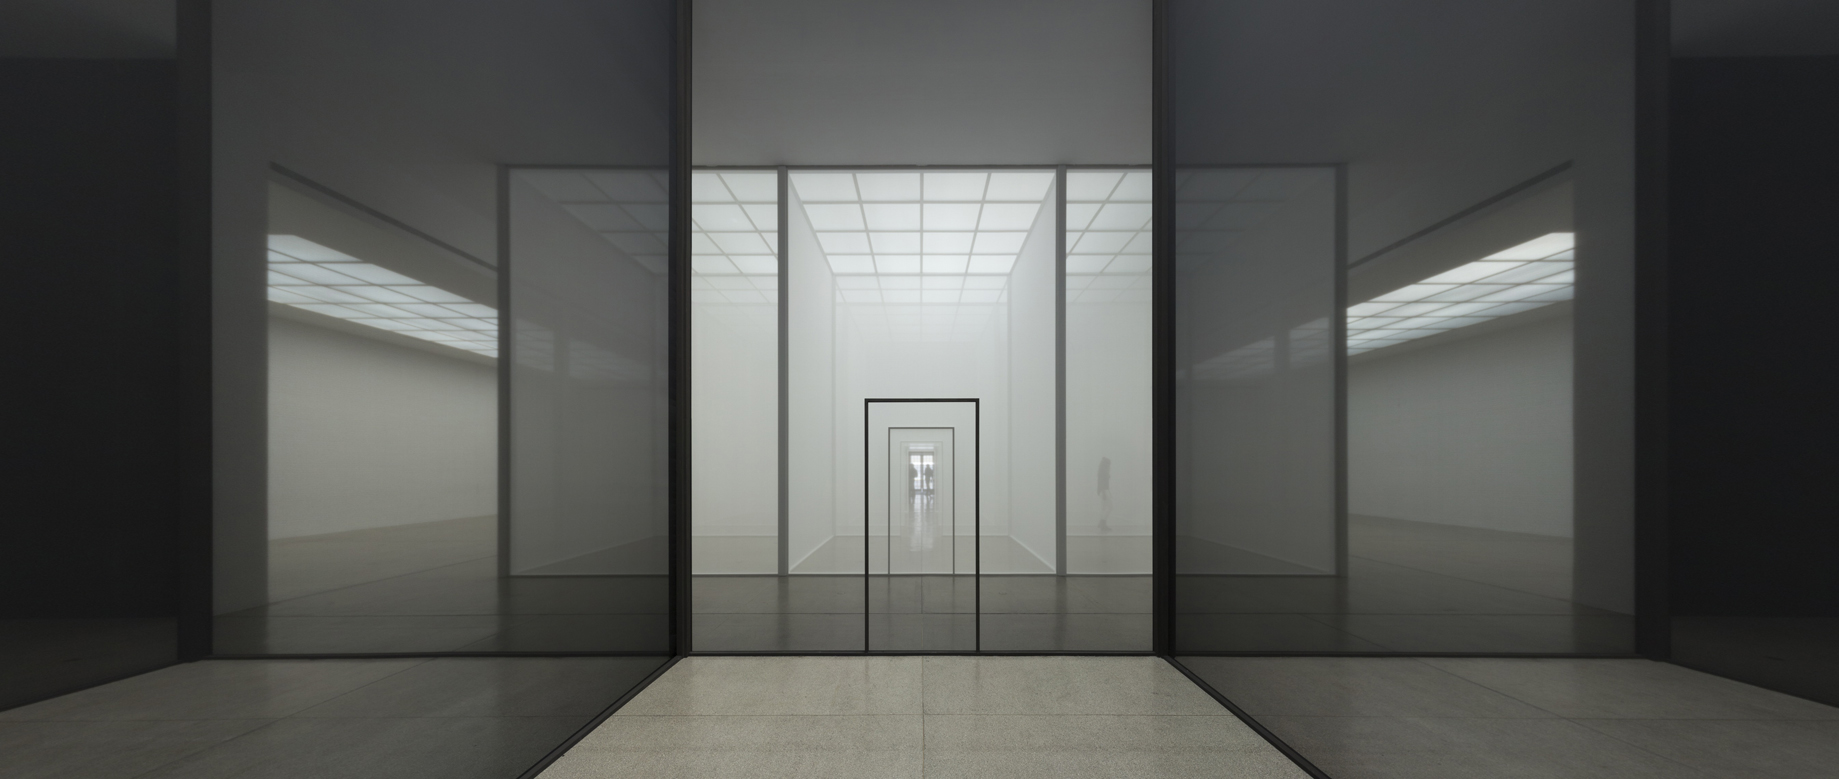 """ROBERT IRWIN: """"DOUBLE BLIND"""", at the Vienna Secession, Vienna, A"""